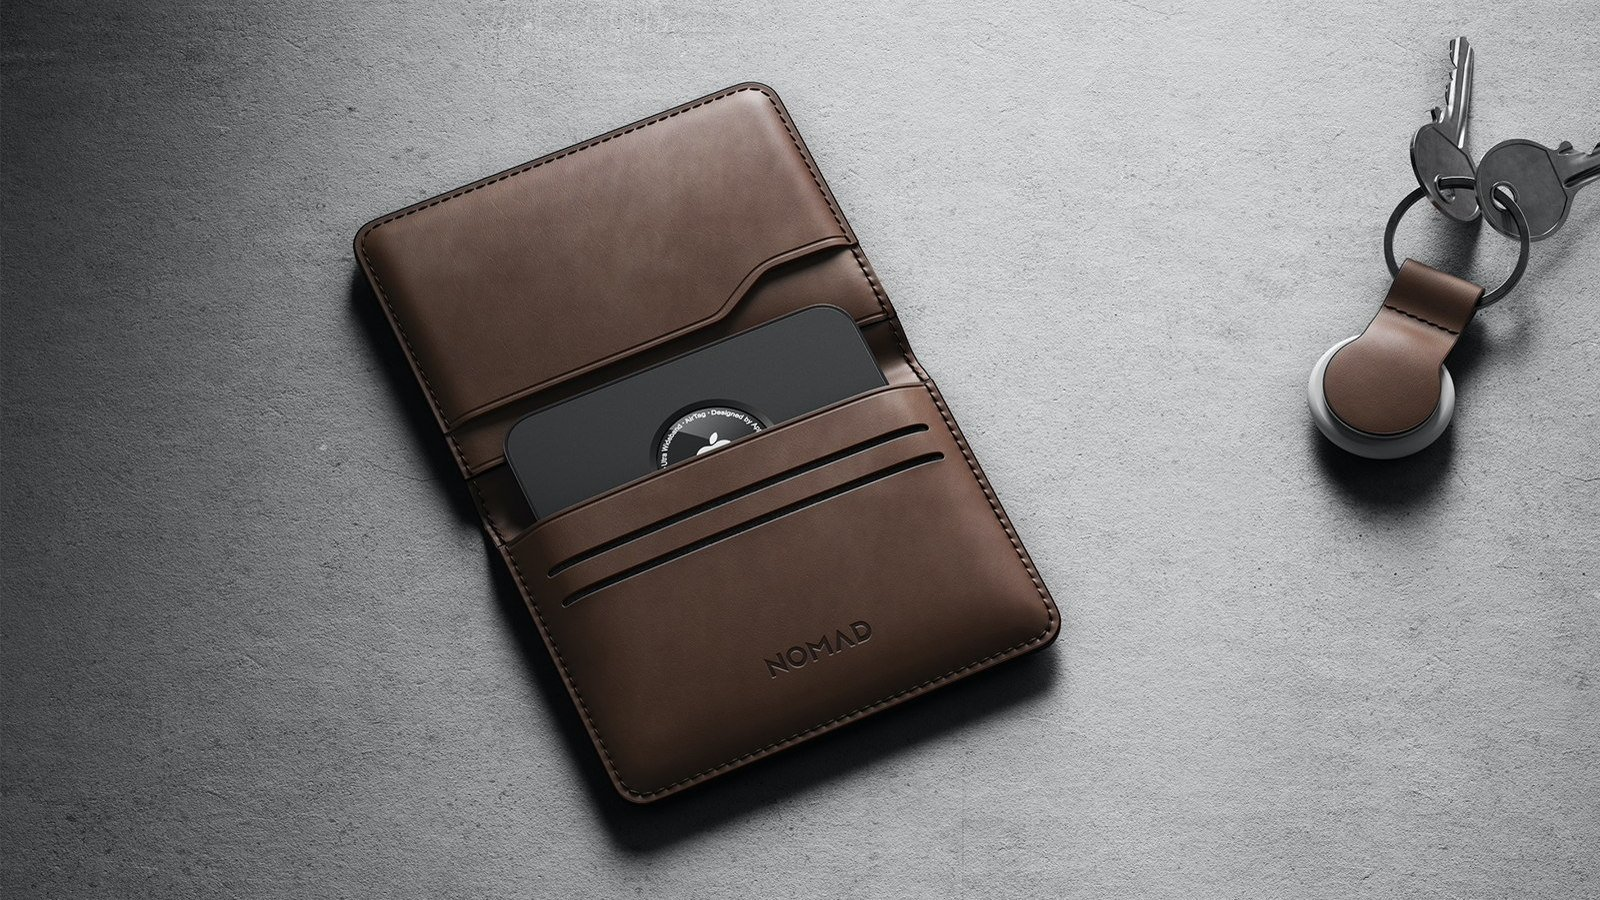 Nomad Card for AirTag wallet tracking is credit card size and helps you track your wallet